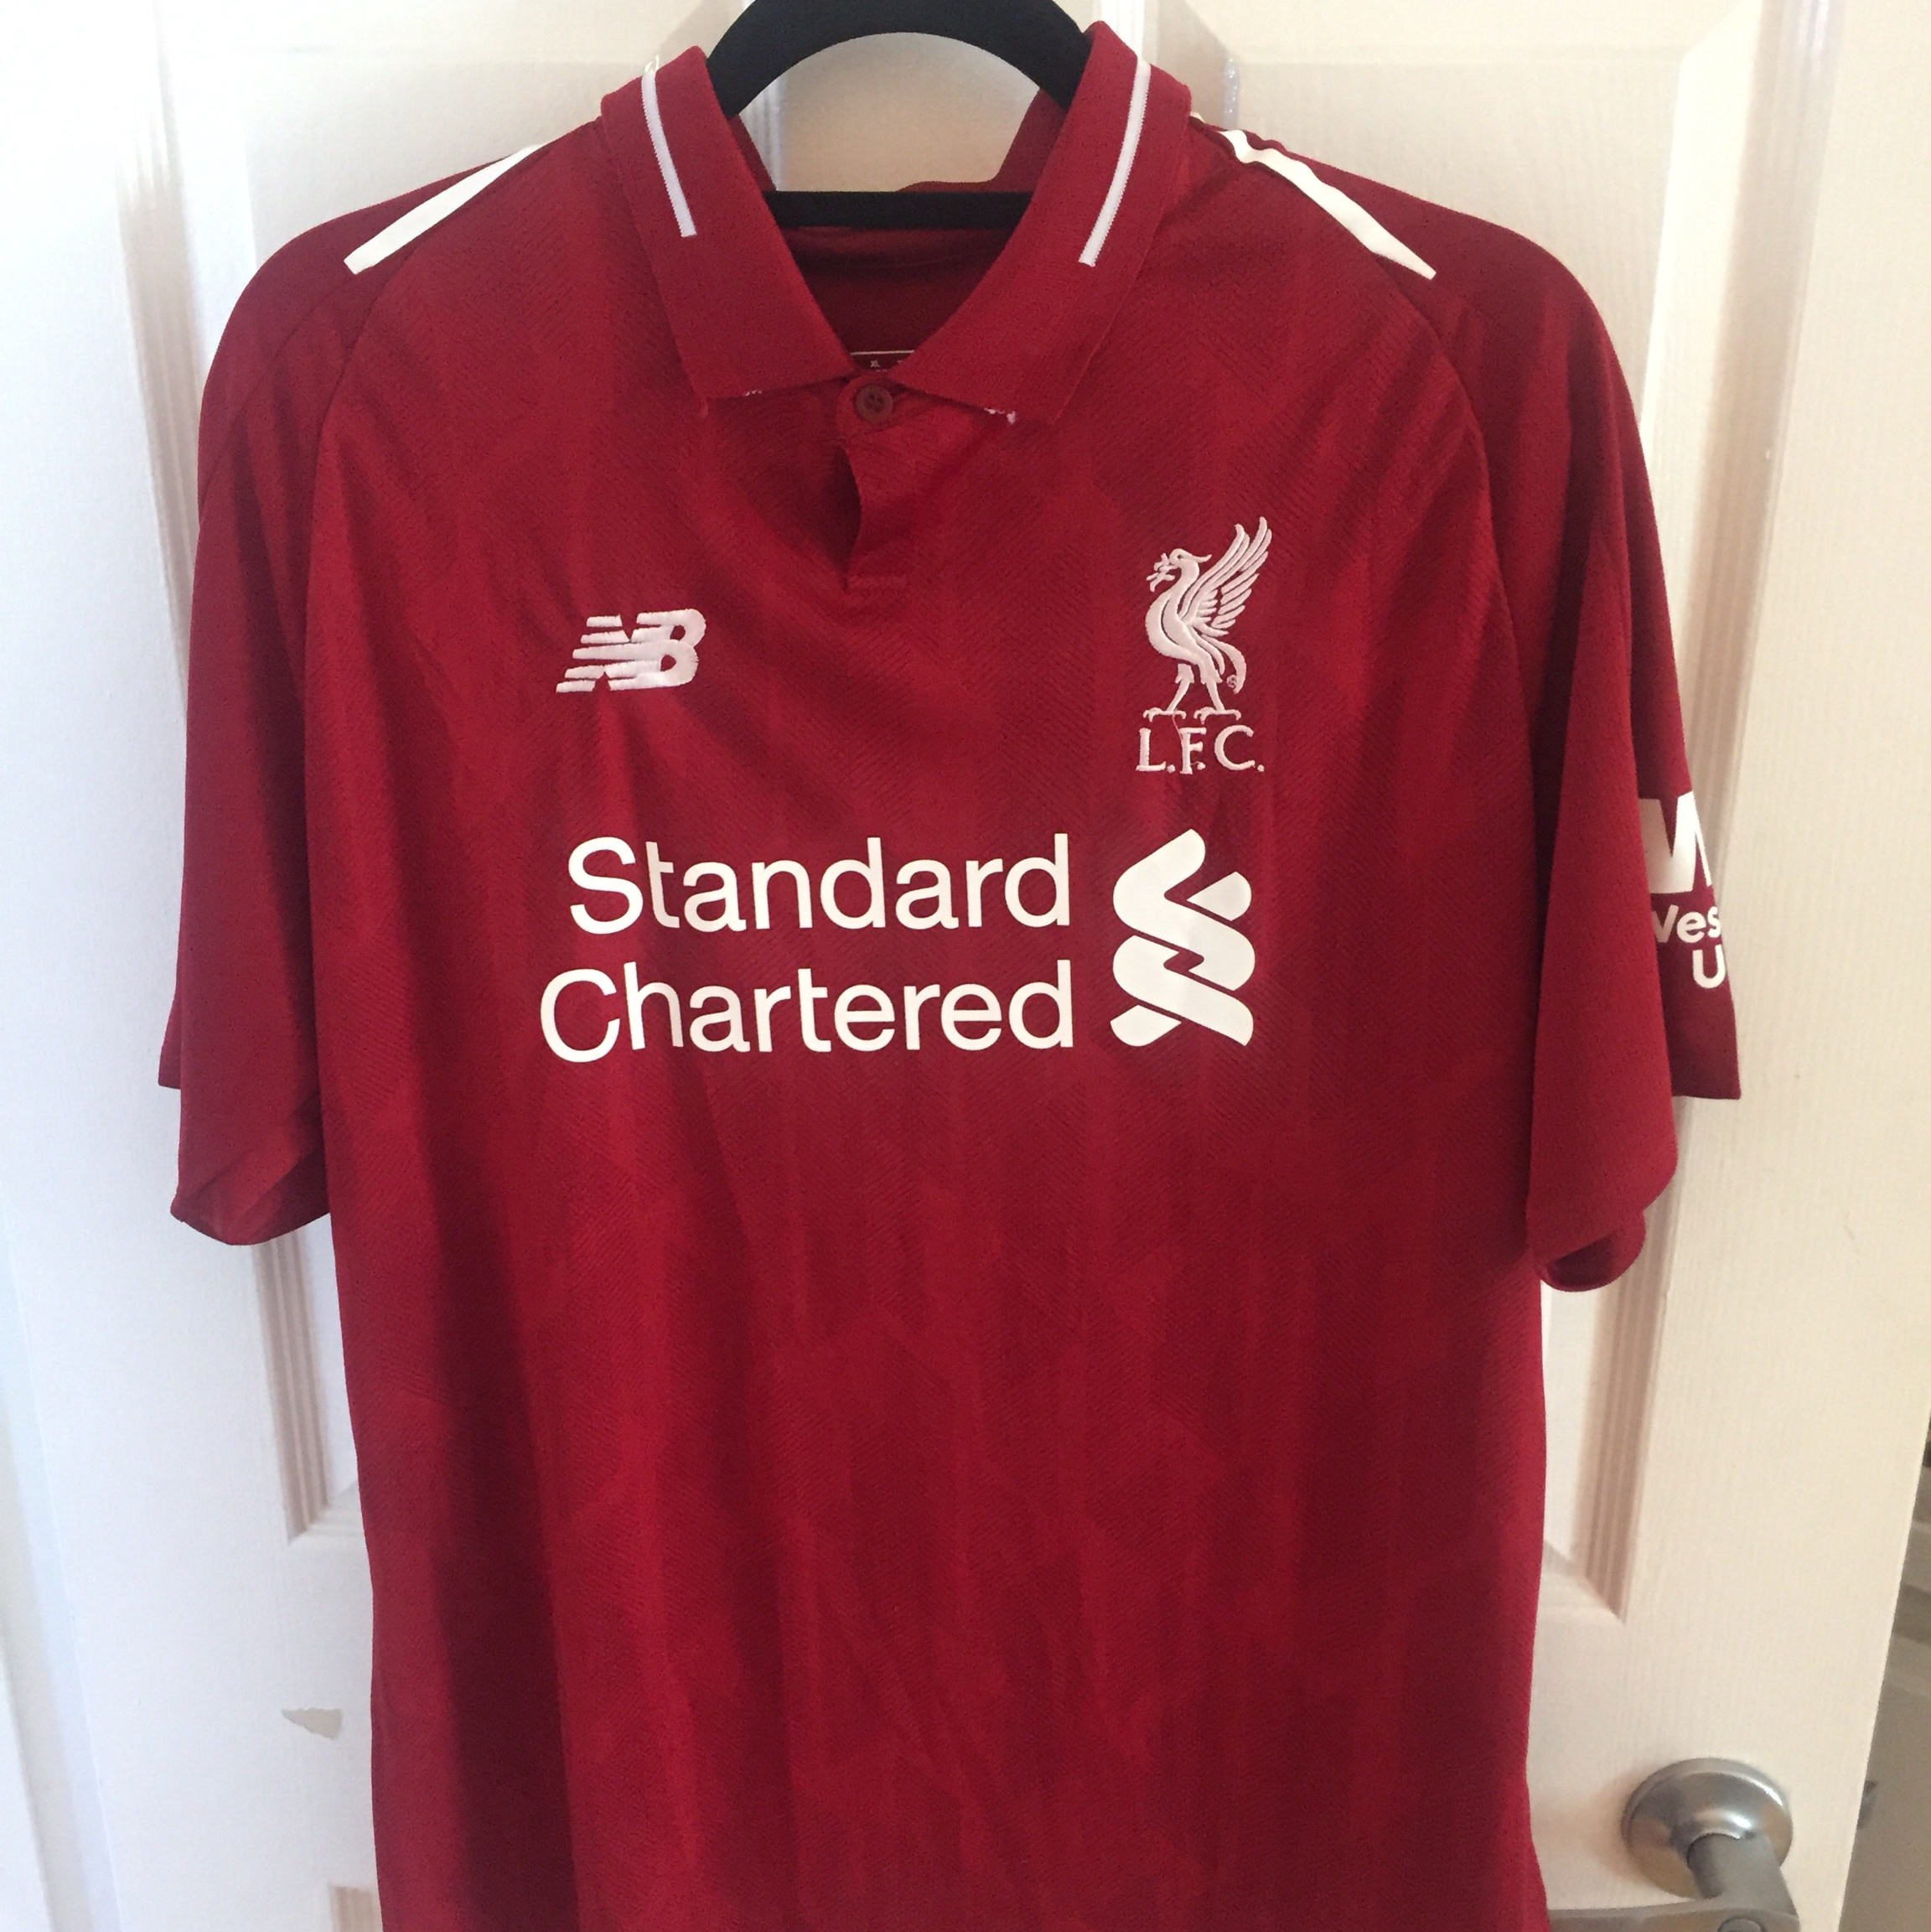 sale retailer 2abc2 3083a Mo Salah Liverpool jersey - brand new with tags -... - Depop